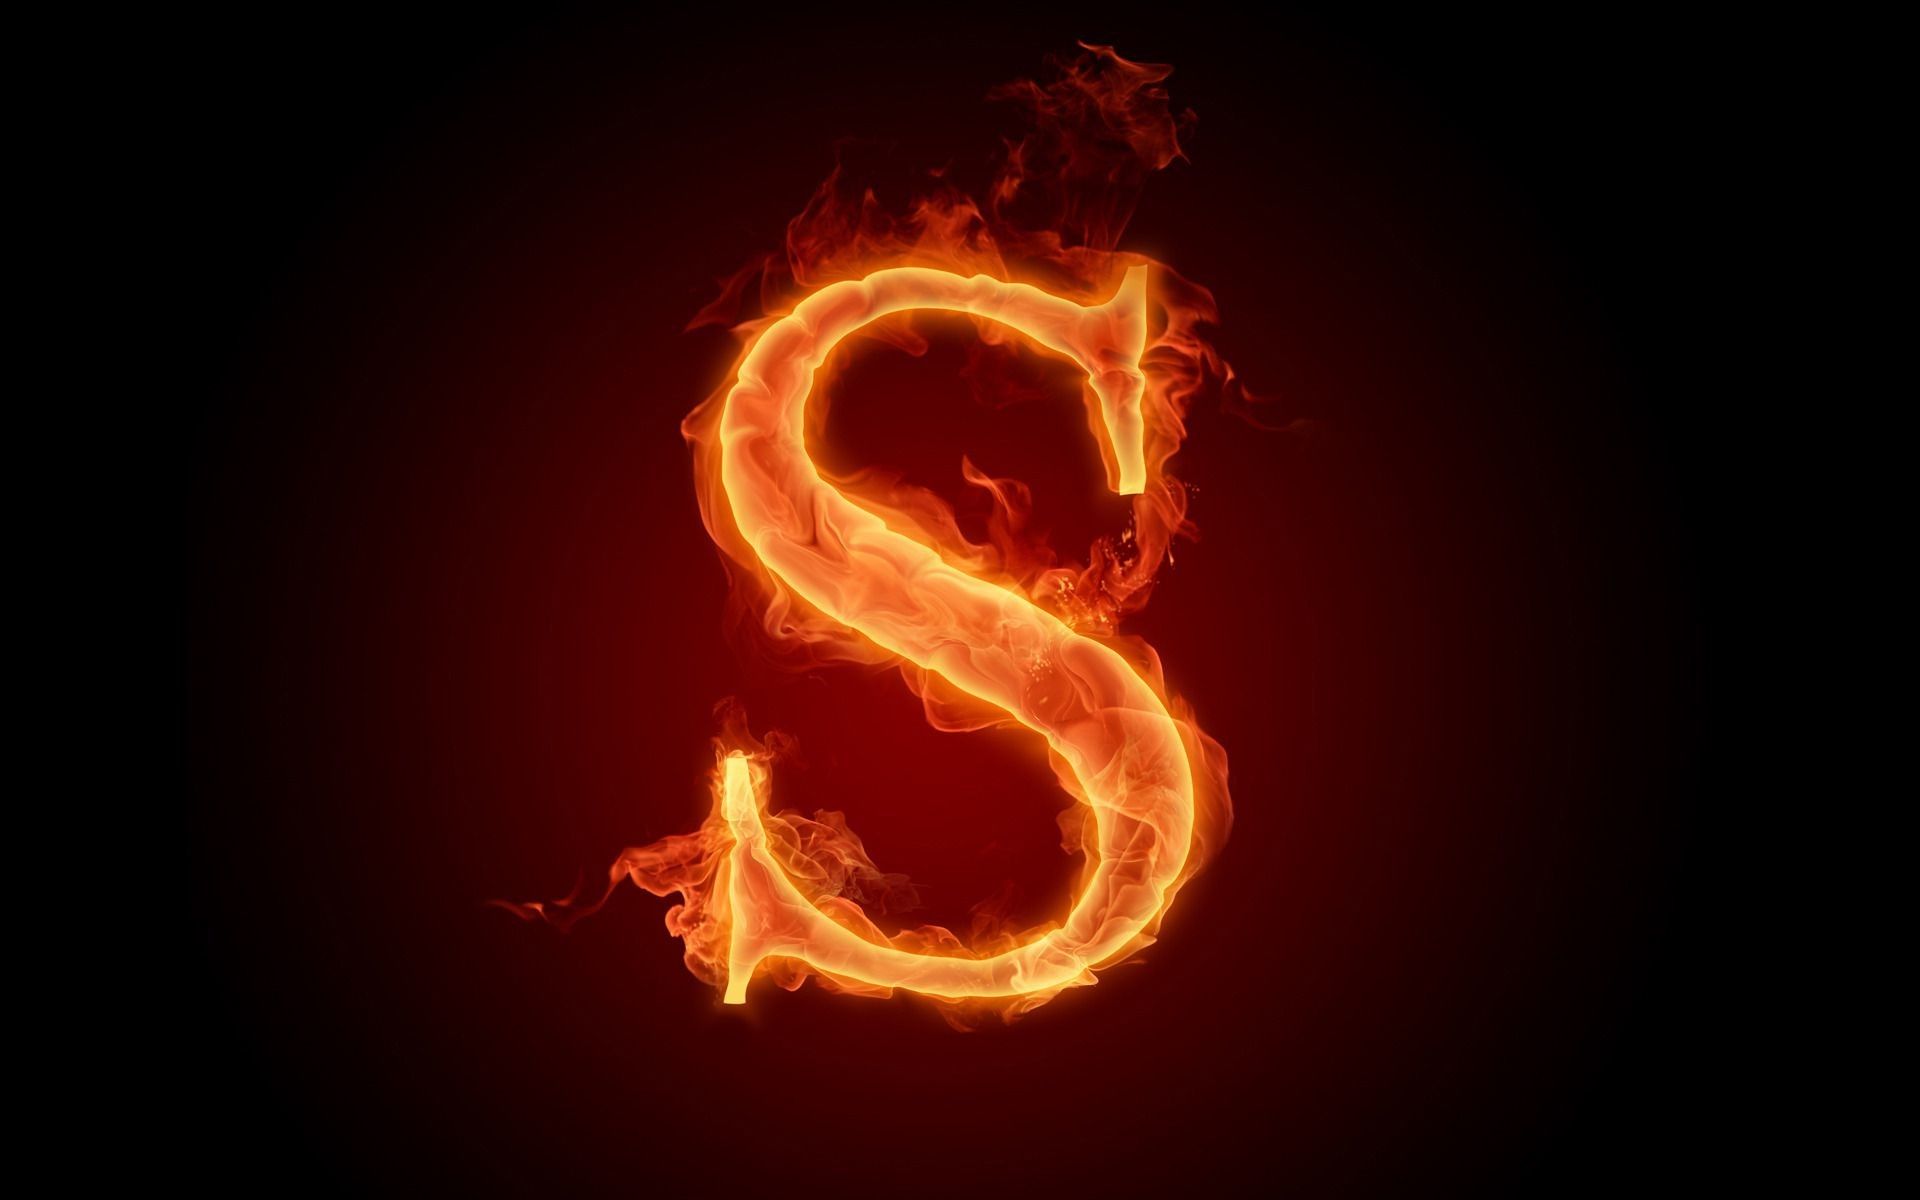 Fire Flame Background Wallpapers